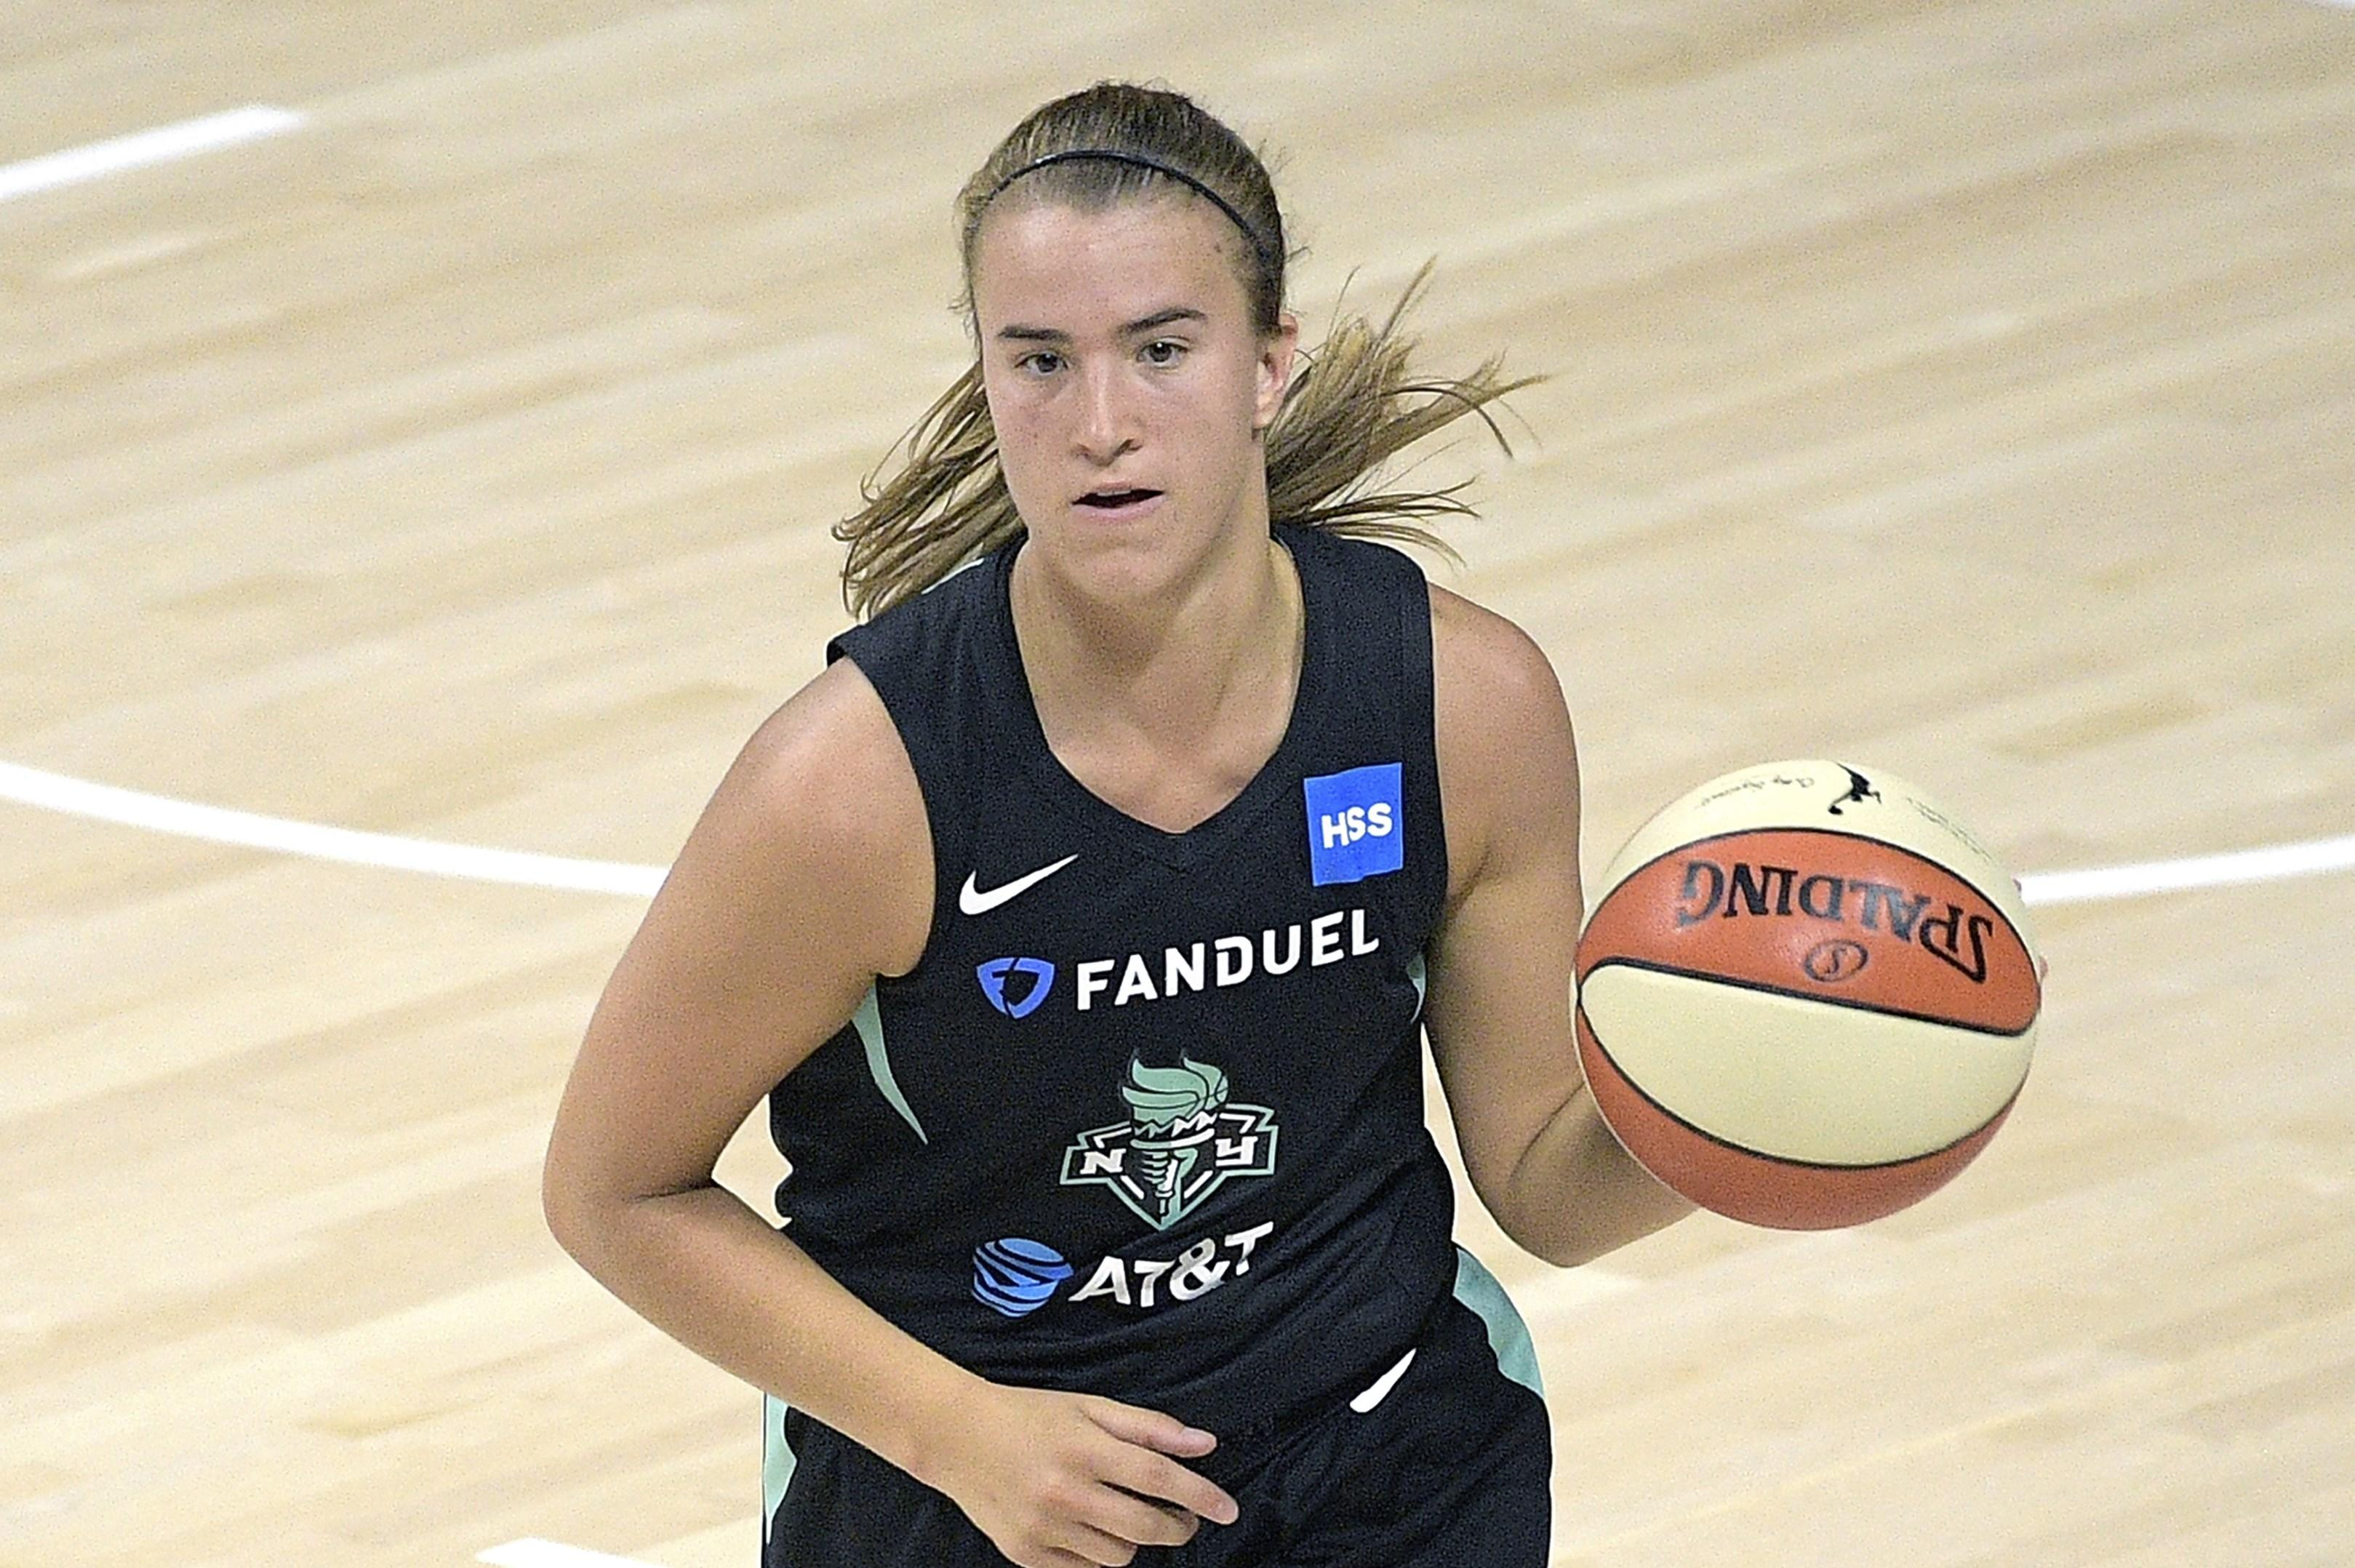 New York Liberty guard Sabrina Ionescu (20) brings the ball up the court during the second half of a WNBA basketball game against the Seattle Storm, Saturday, July 25, 2020, in Bradenton, Fla. (AP Photo/Phelan M. Ebenhack)